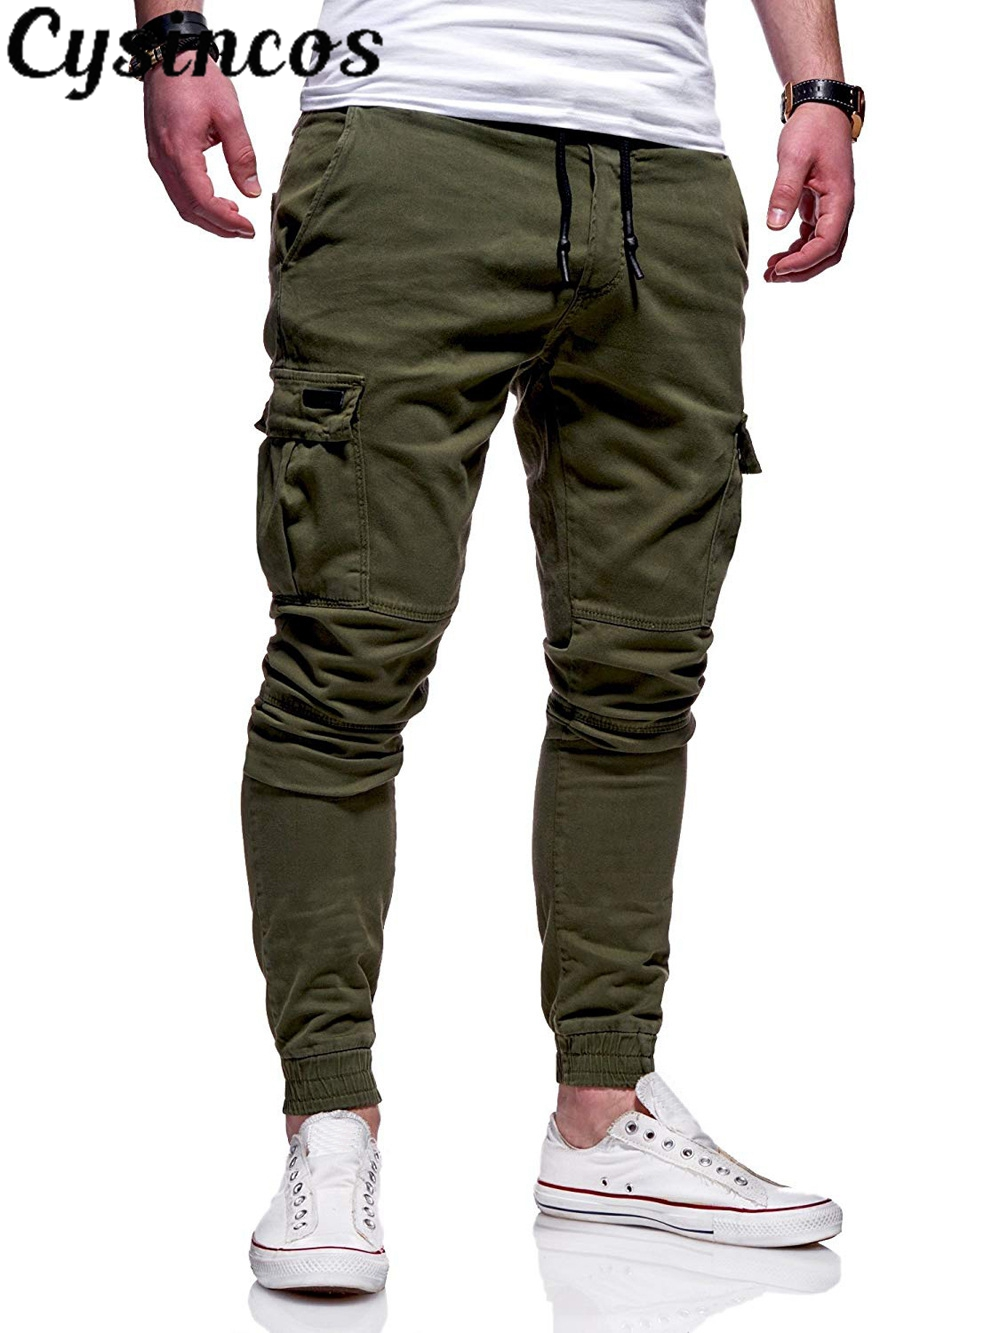 CYSINCOS New Style Fashion Hot Solid Pocket Men's Jogger Pants Urban Hip Hop Harem Casual Trousers Slim Fit Elastic